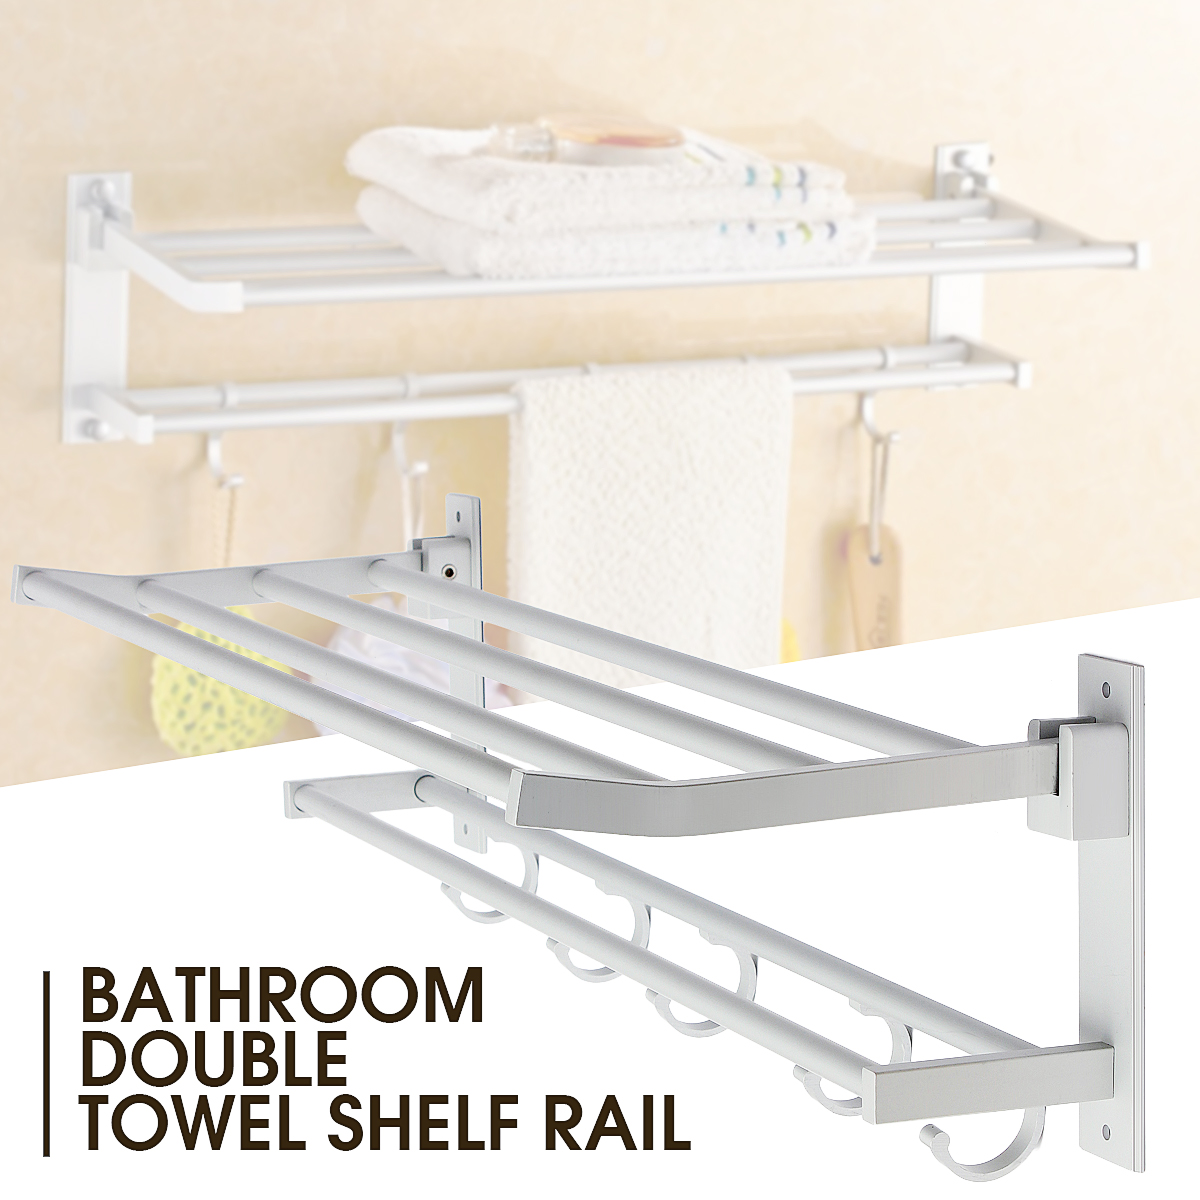 1Pcs 2Layers Foldable Alumimum Bathroom Towel Rack Holder Hanger With 5 Hooks Kitchen Hotel Bath Towel Clothes Storage Shelf modern chrome fixed bath towel holder with hooks stainless steel towel rack holder for hotel or home bathroom storage rack shelf